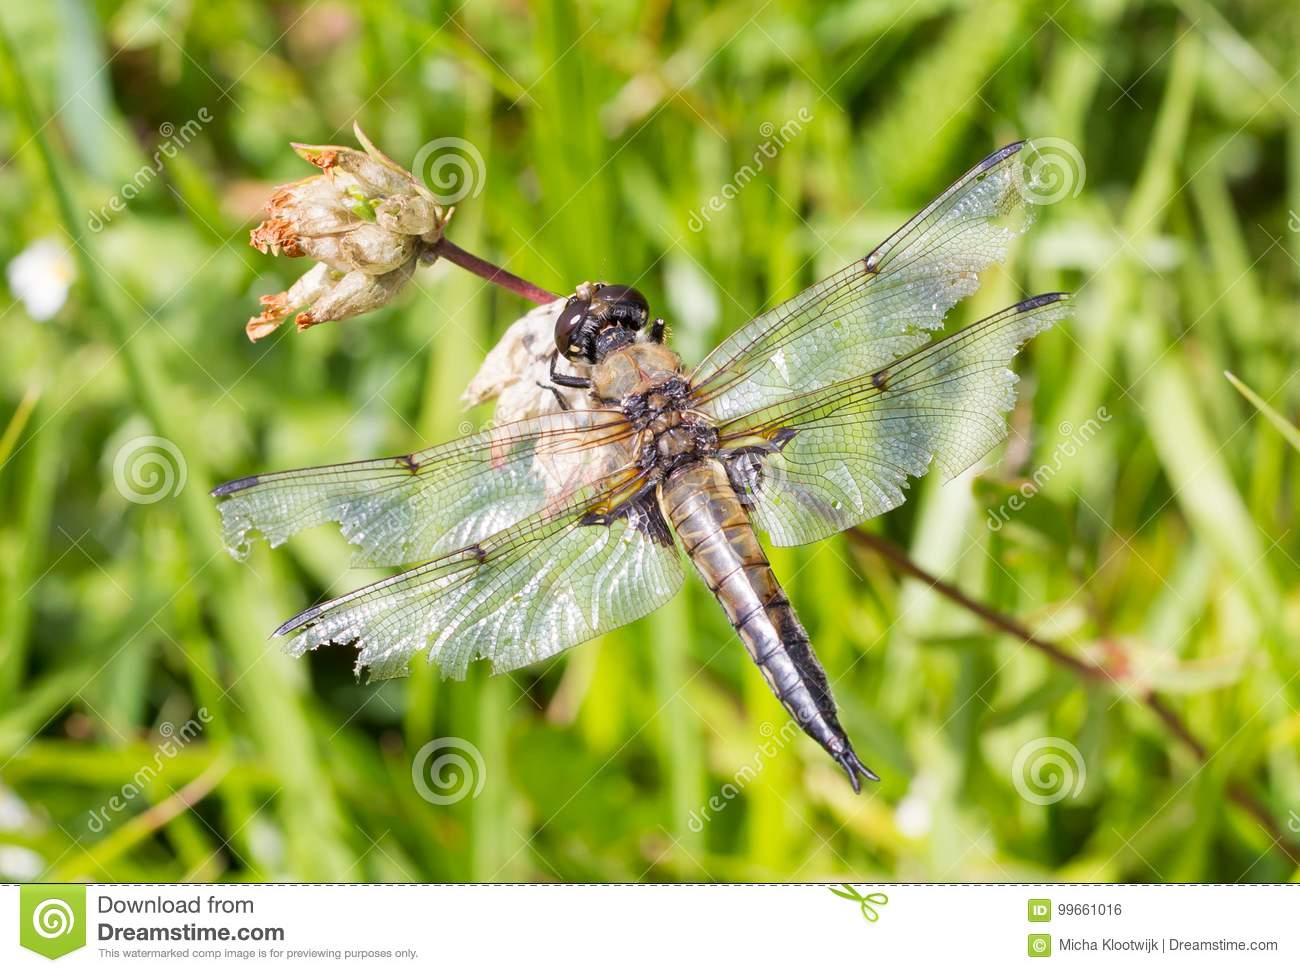 Dragonfly resting over a small flower